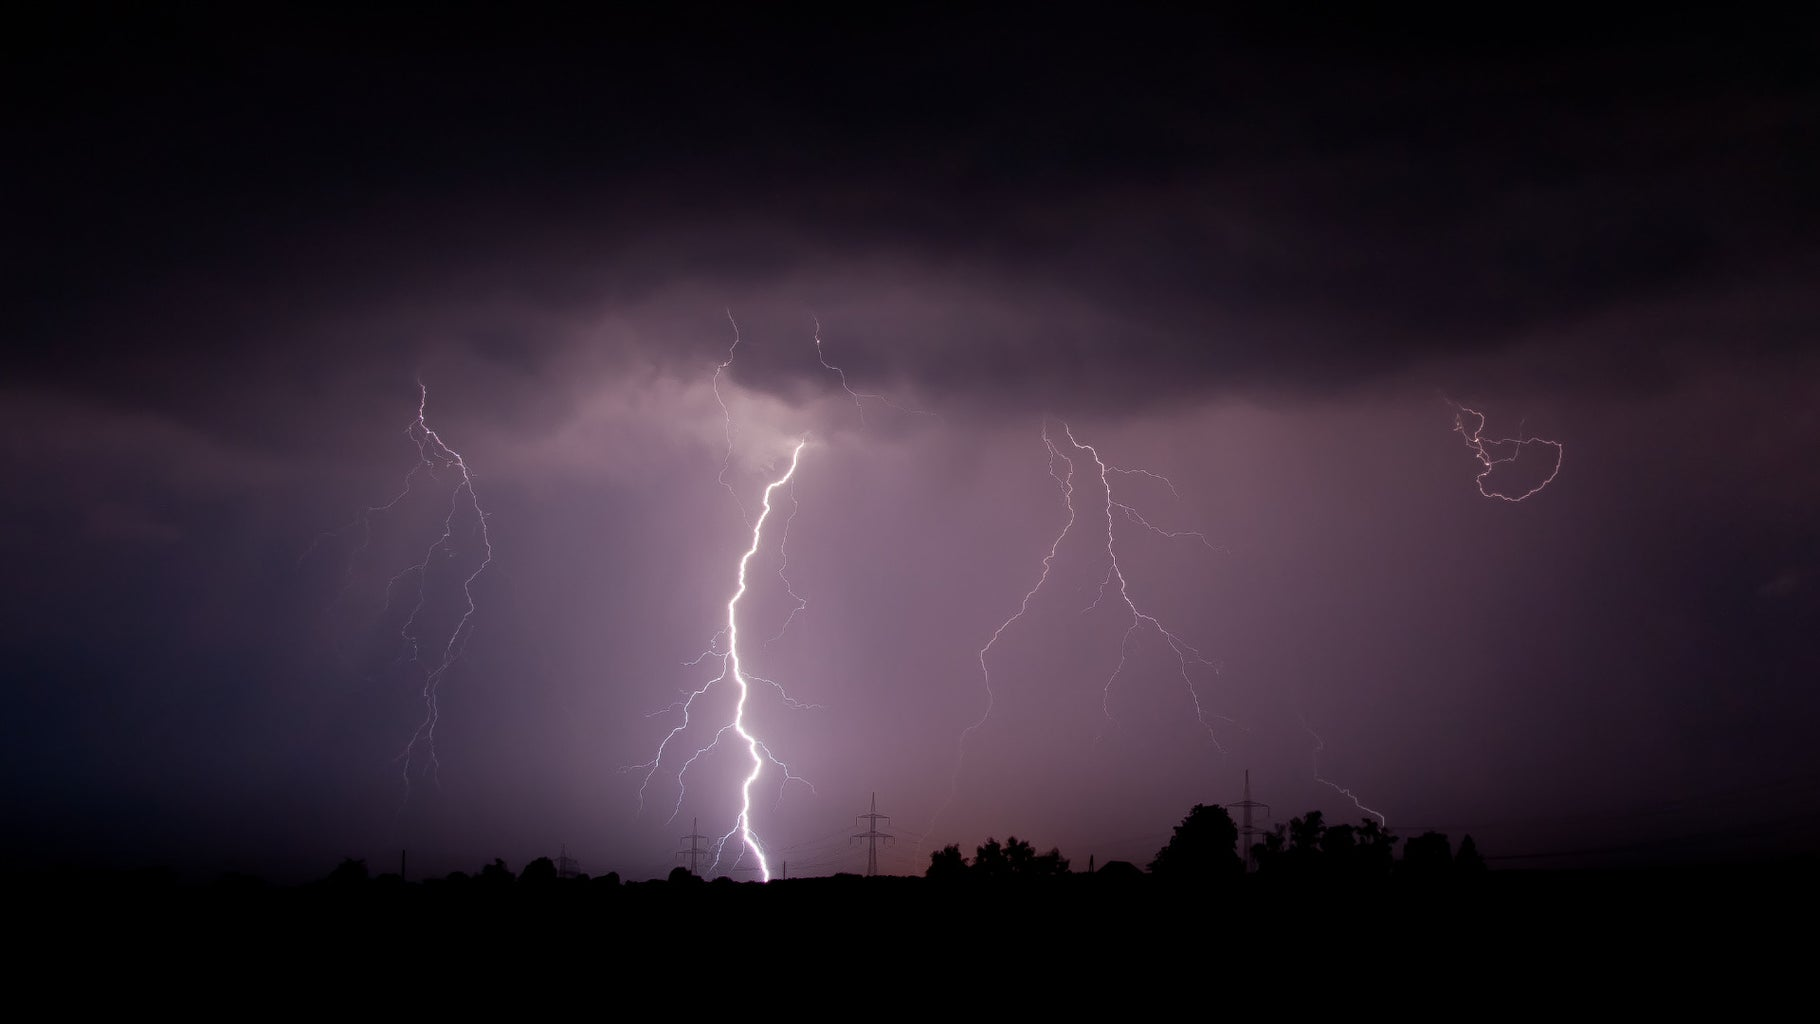 How to Capture a Photo of a Lightning (poor Man's Way)